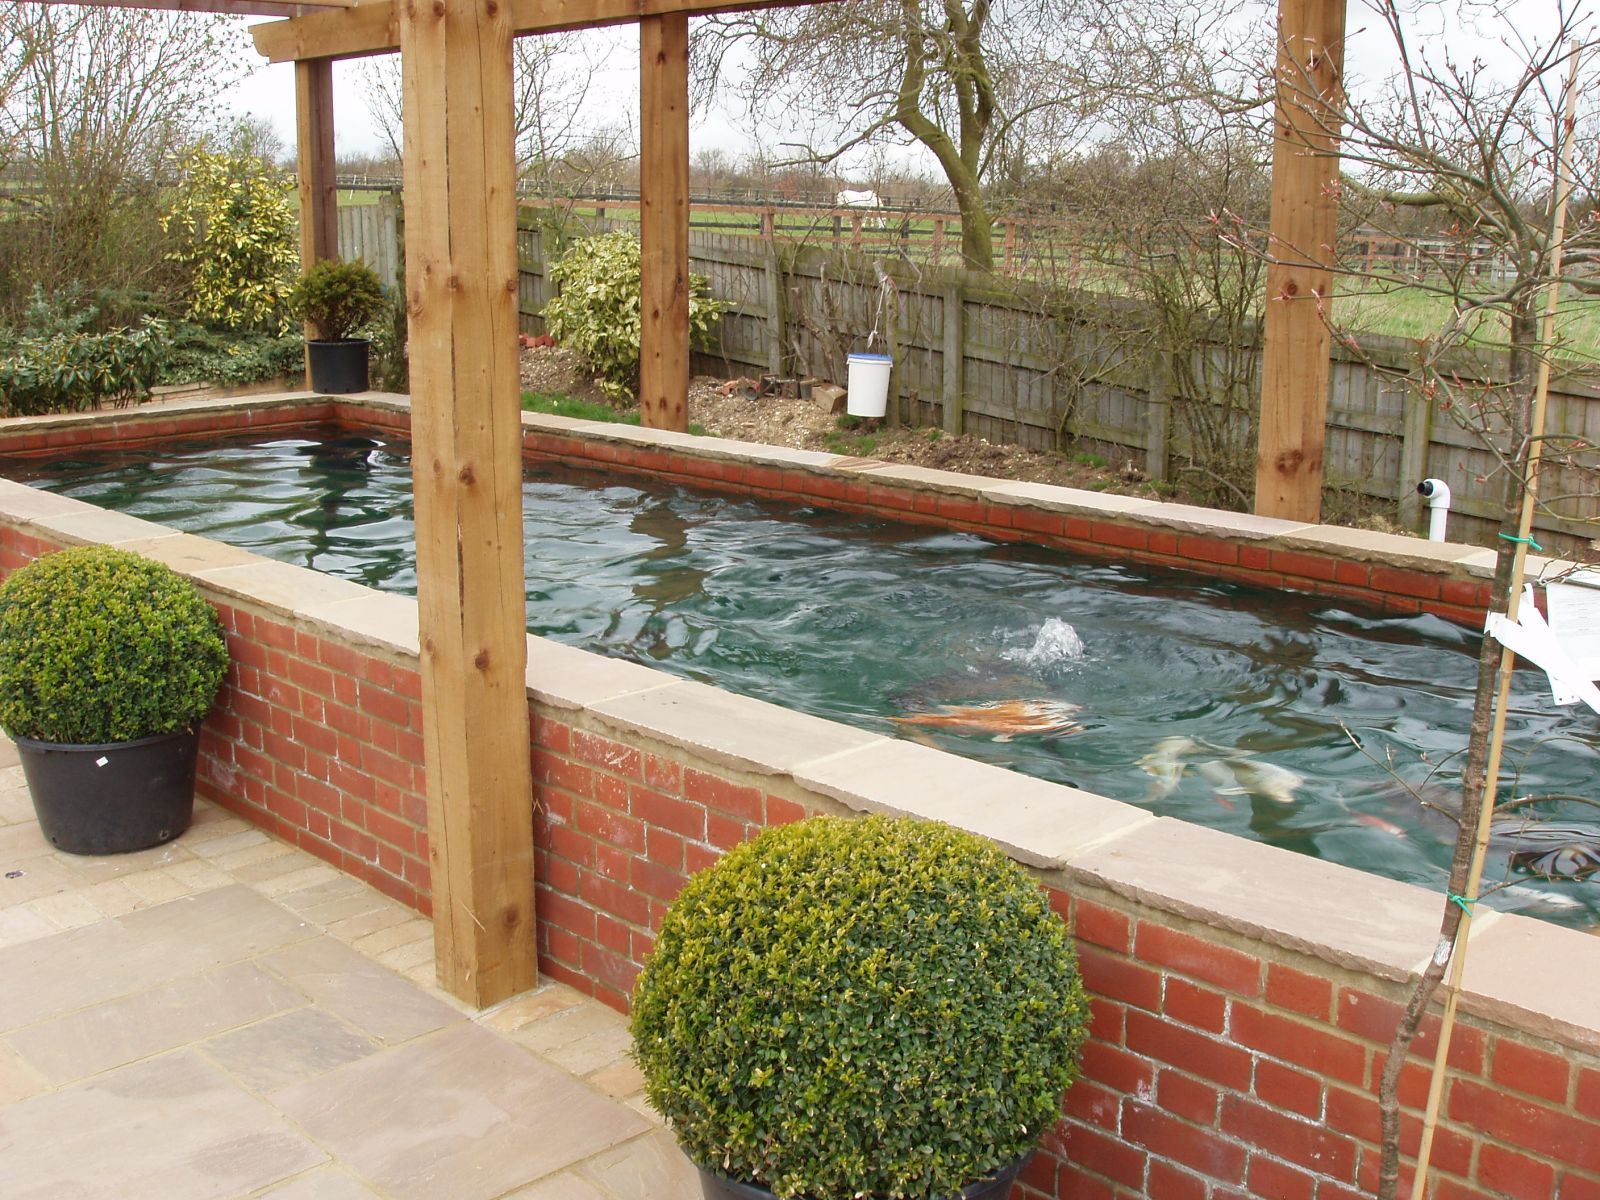 Pond design ideas raised koi ponds pond stars uk dorset for Water pond design